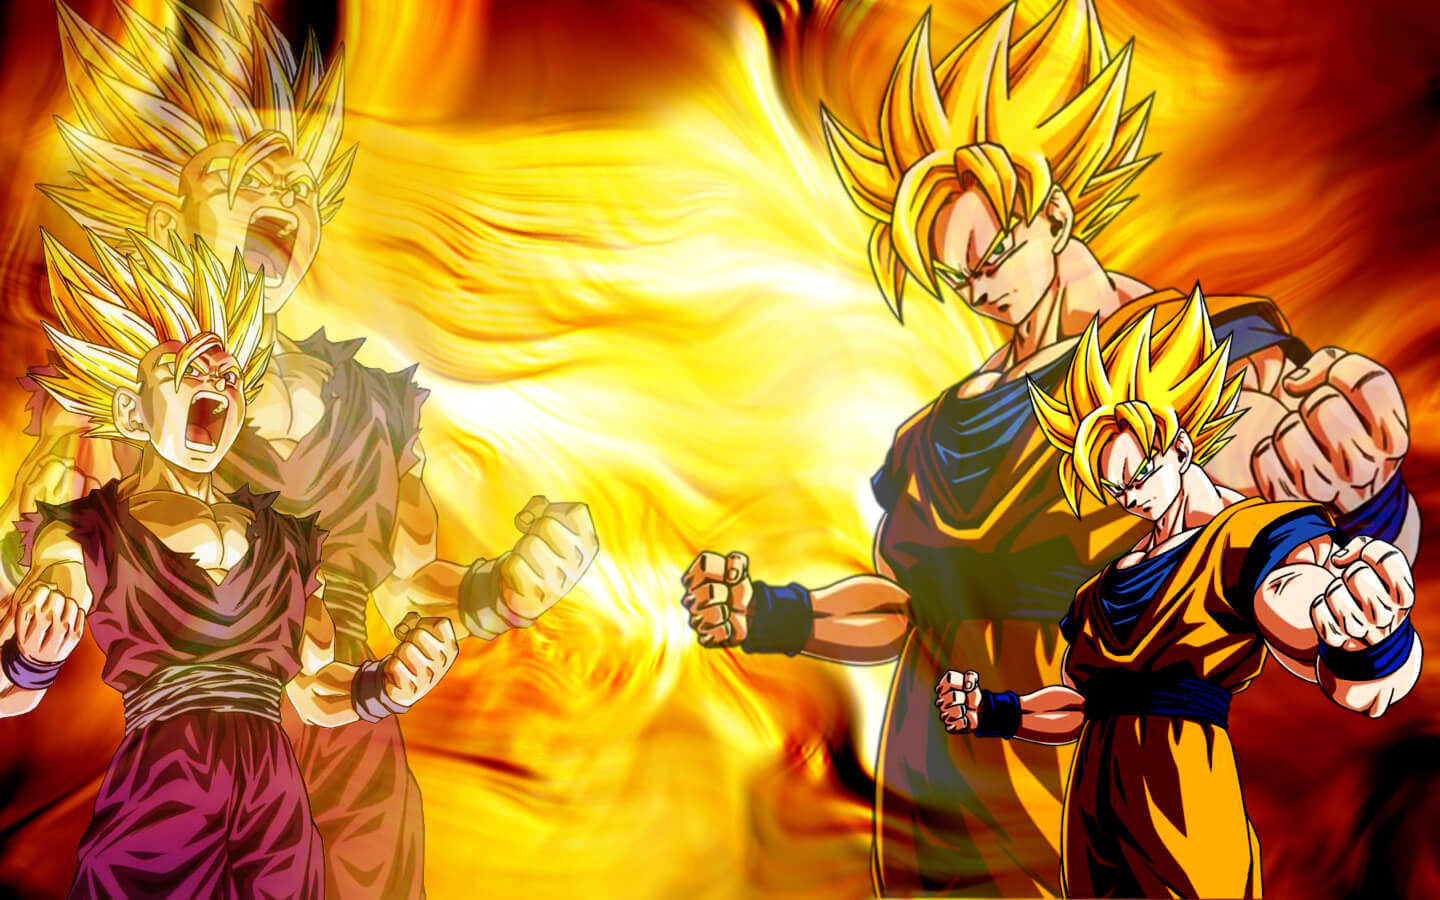 36 Dbz Live Wallpaper Desktop On Wallpapersafari